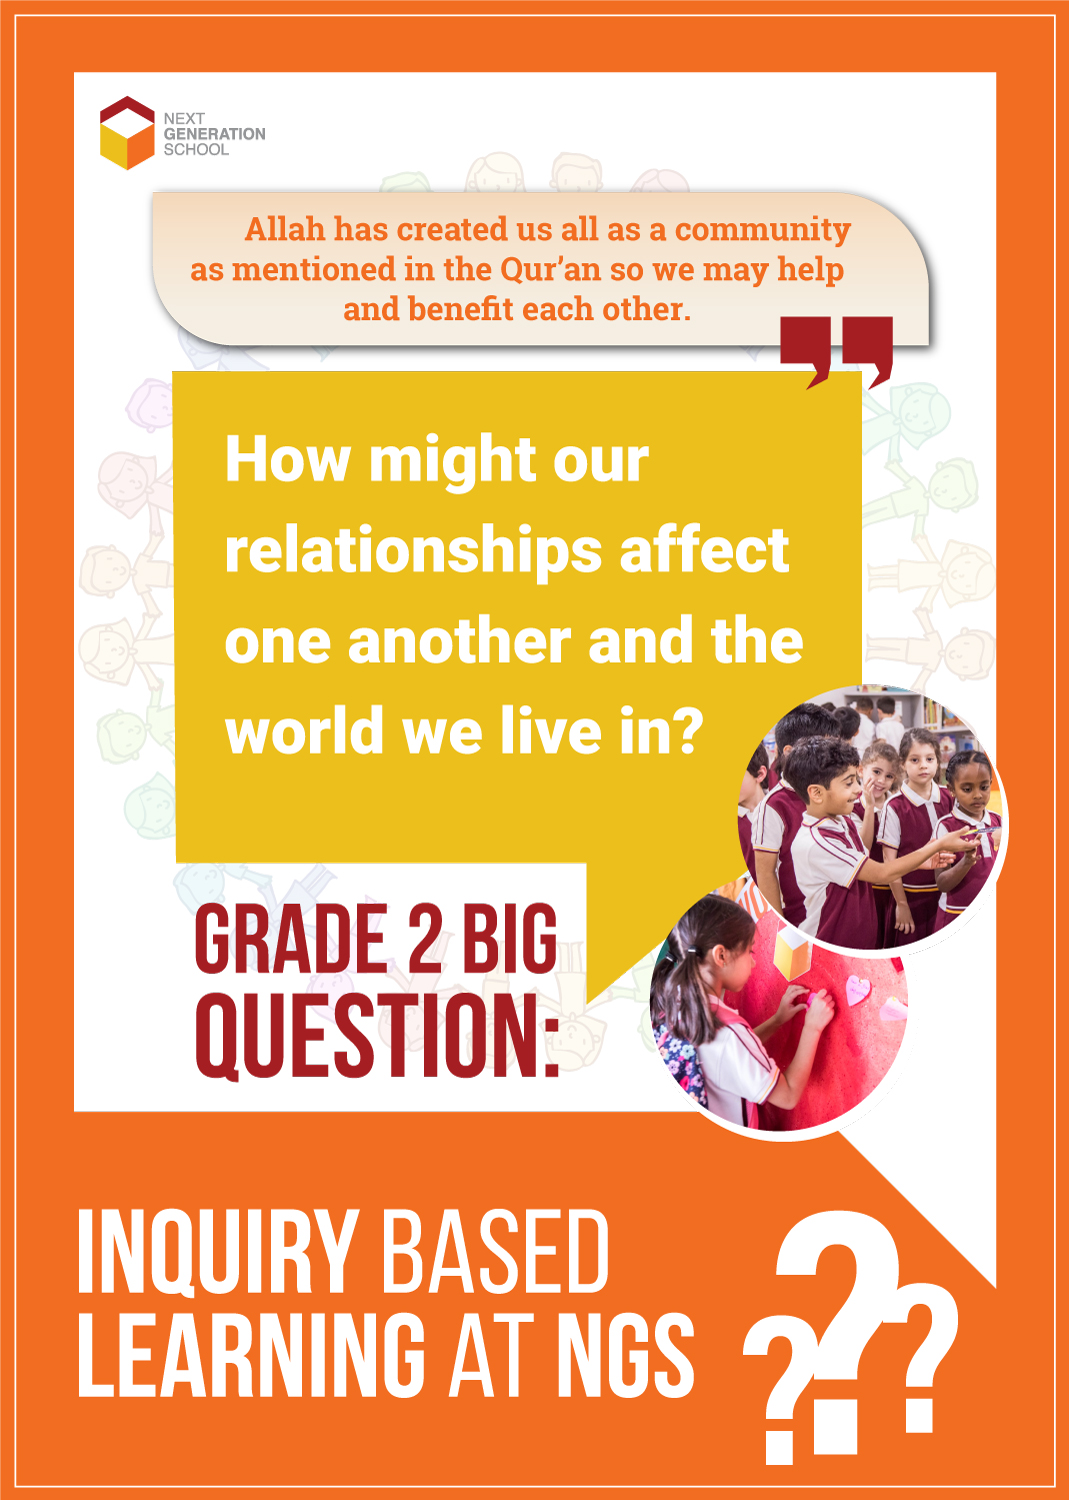 Grade 2 inquiries